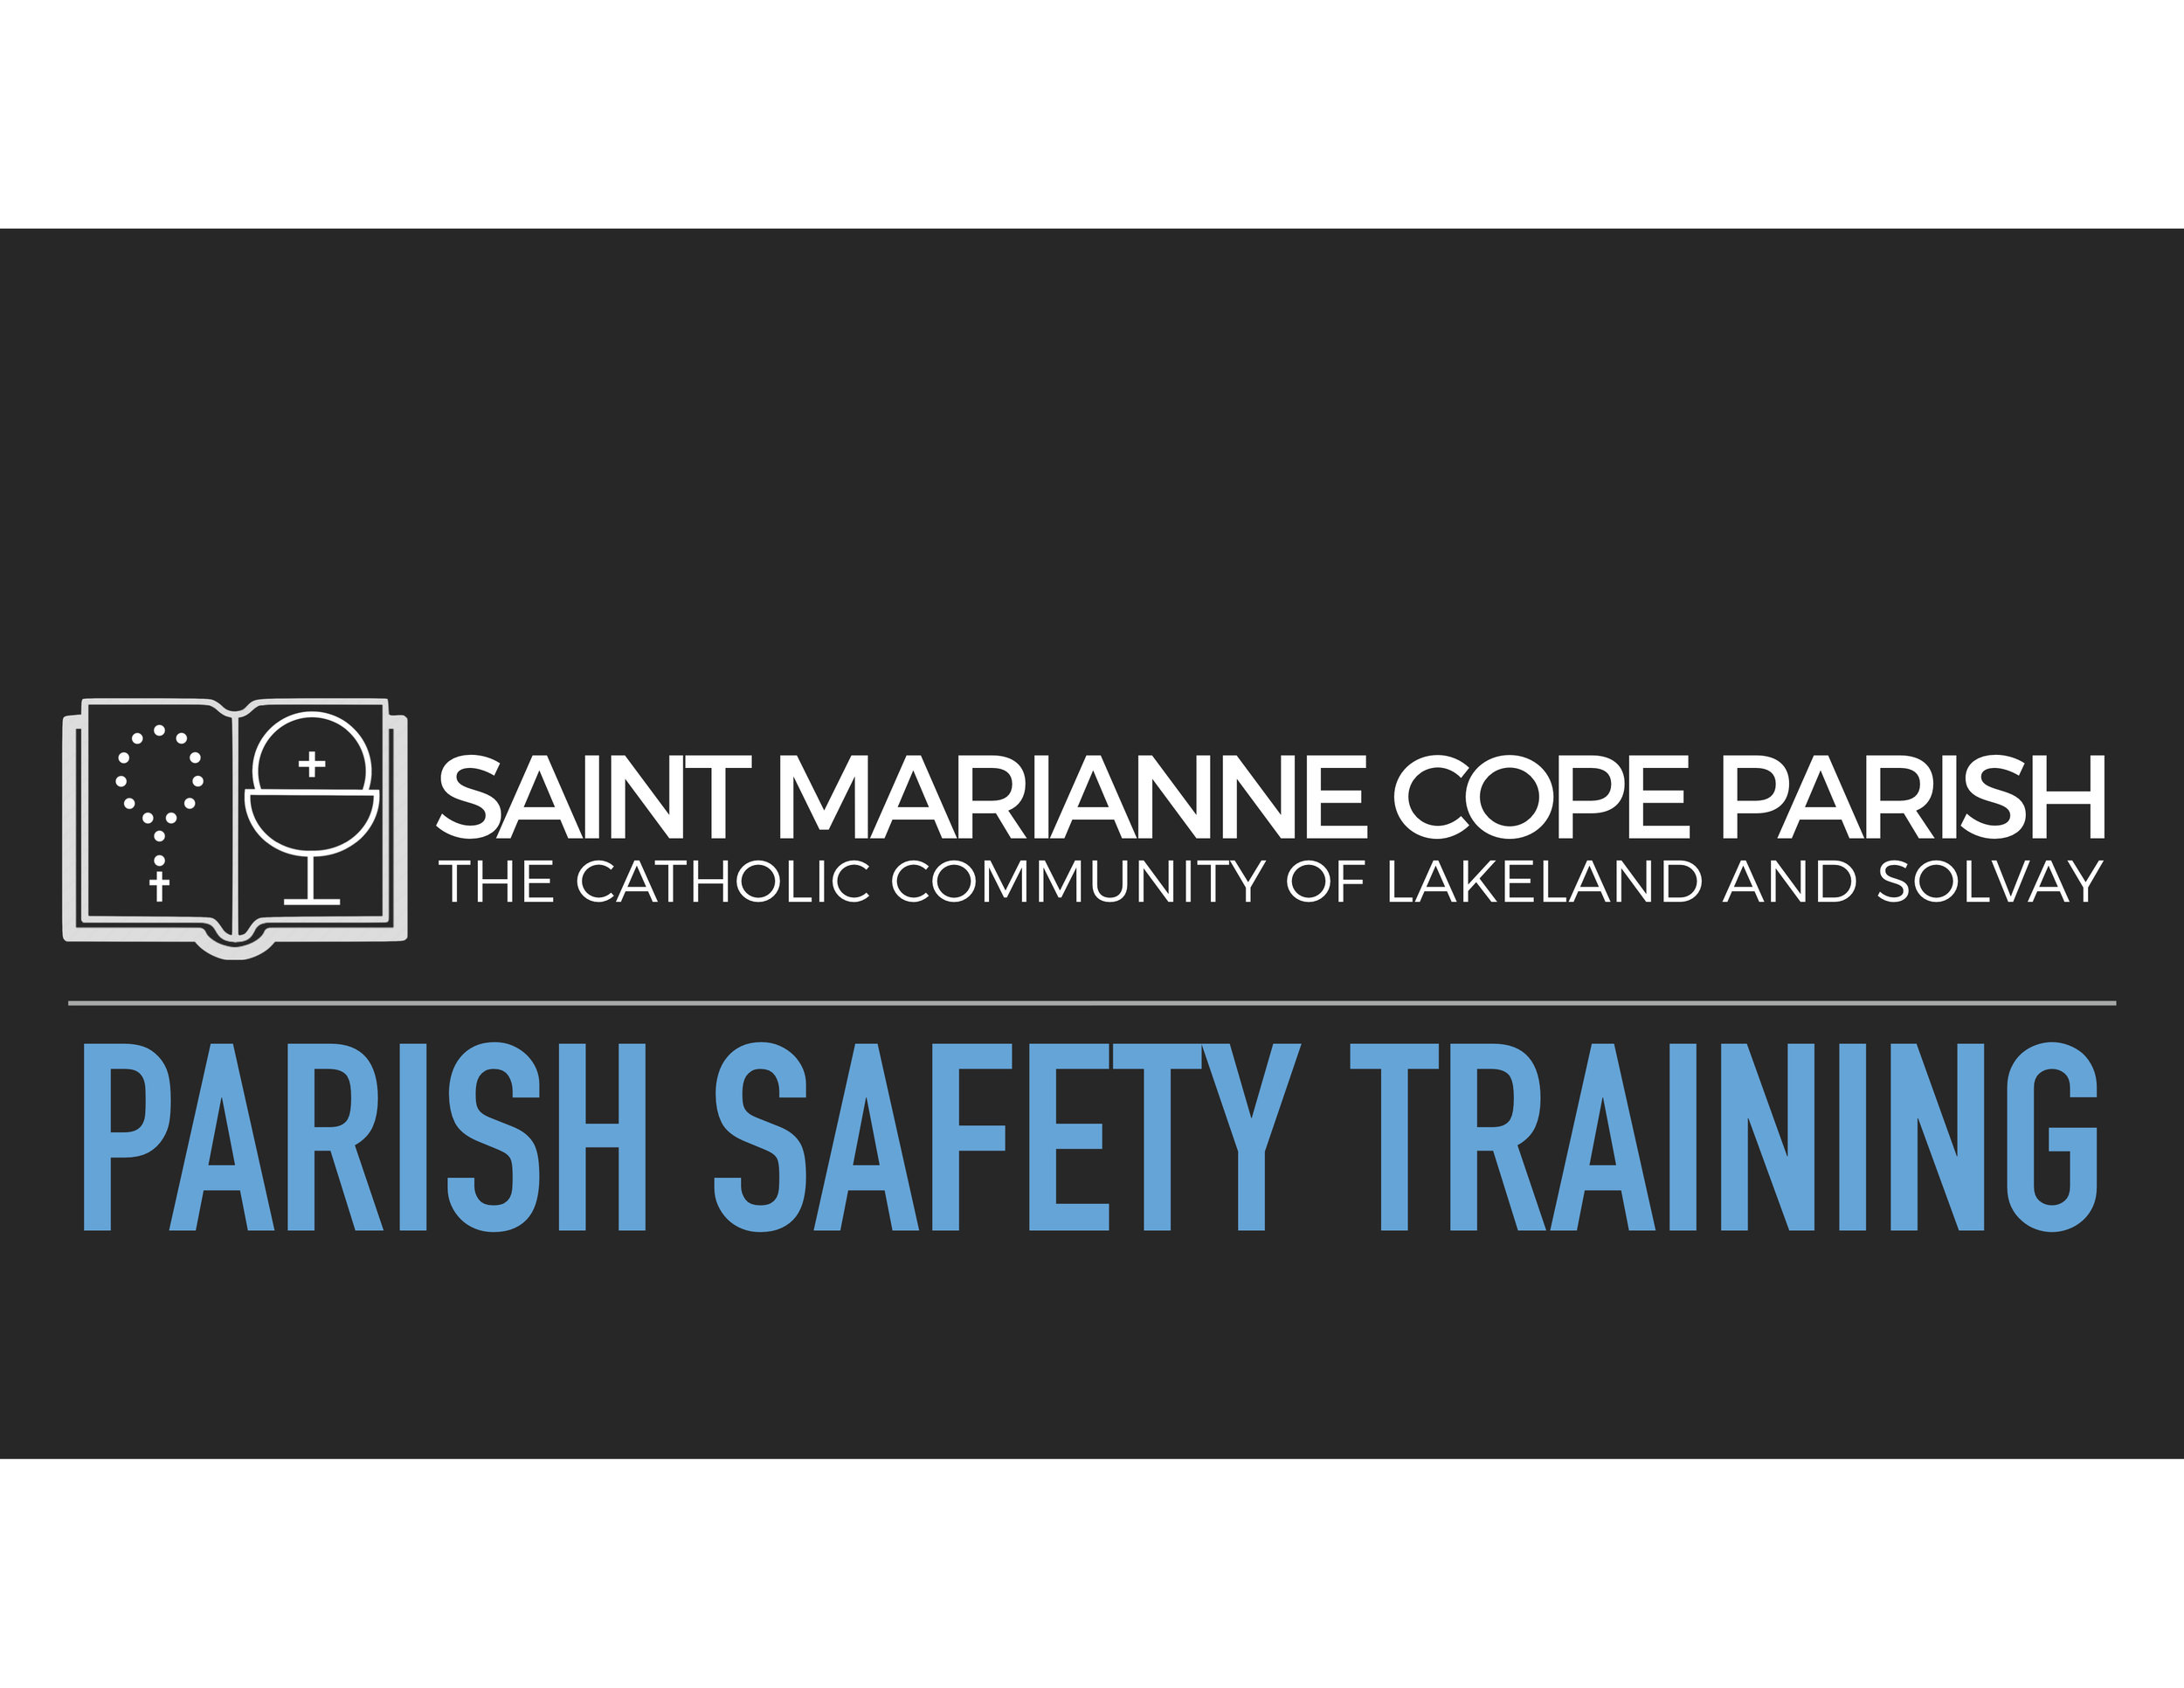 parish safety webpage image.jpg